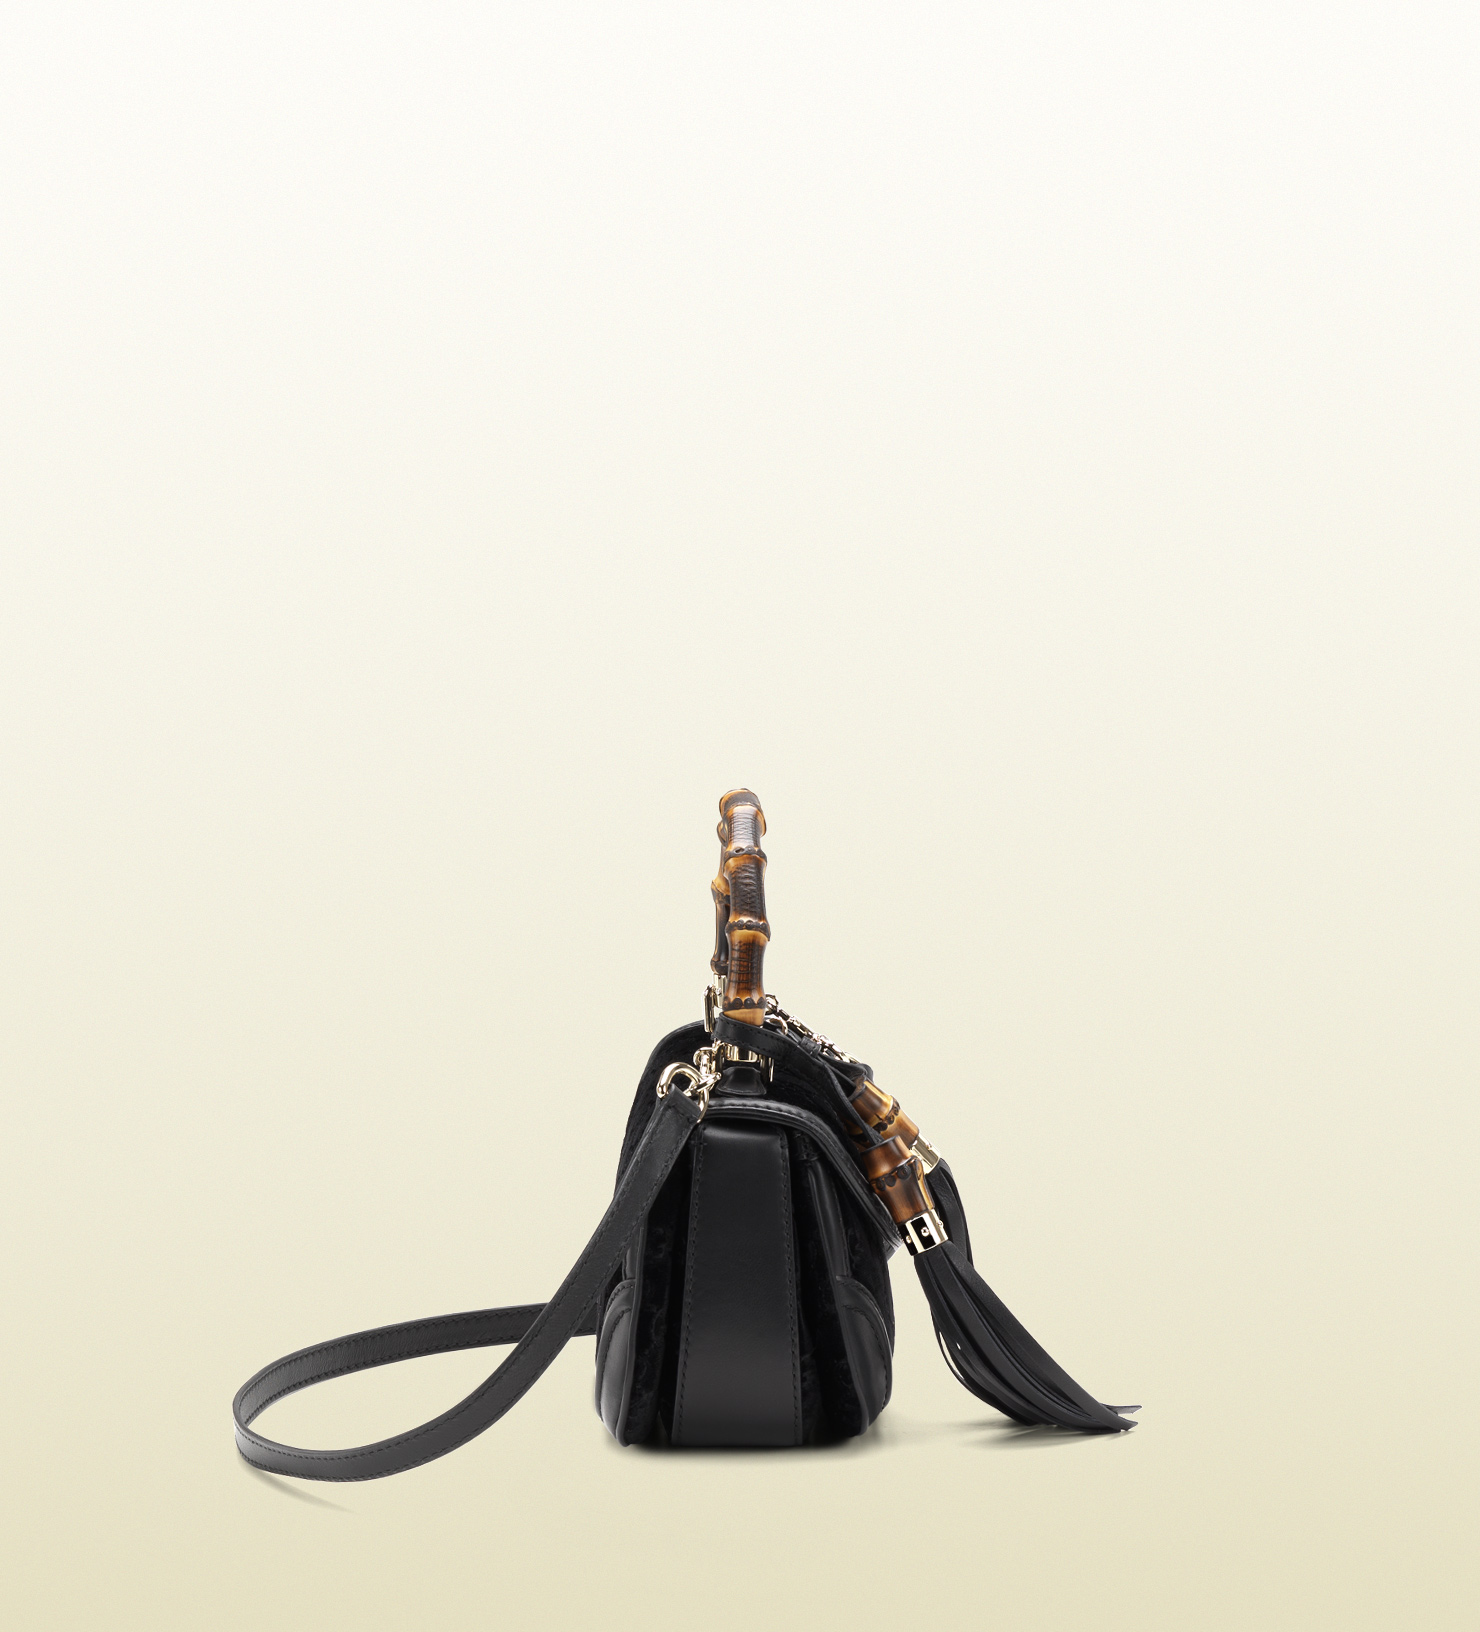 bba6f76eee6cd8 Gucci New Bamboo Gg Cotton Velvet Top Handle Bag in Black - Lyst